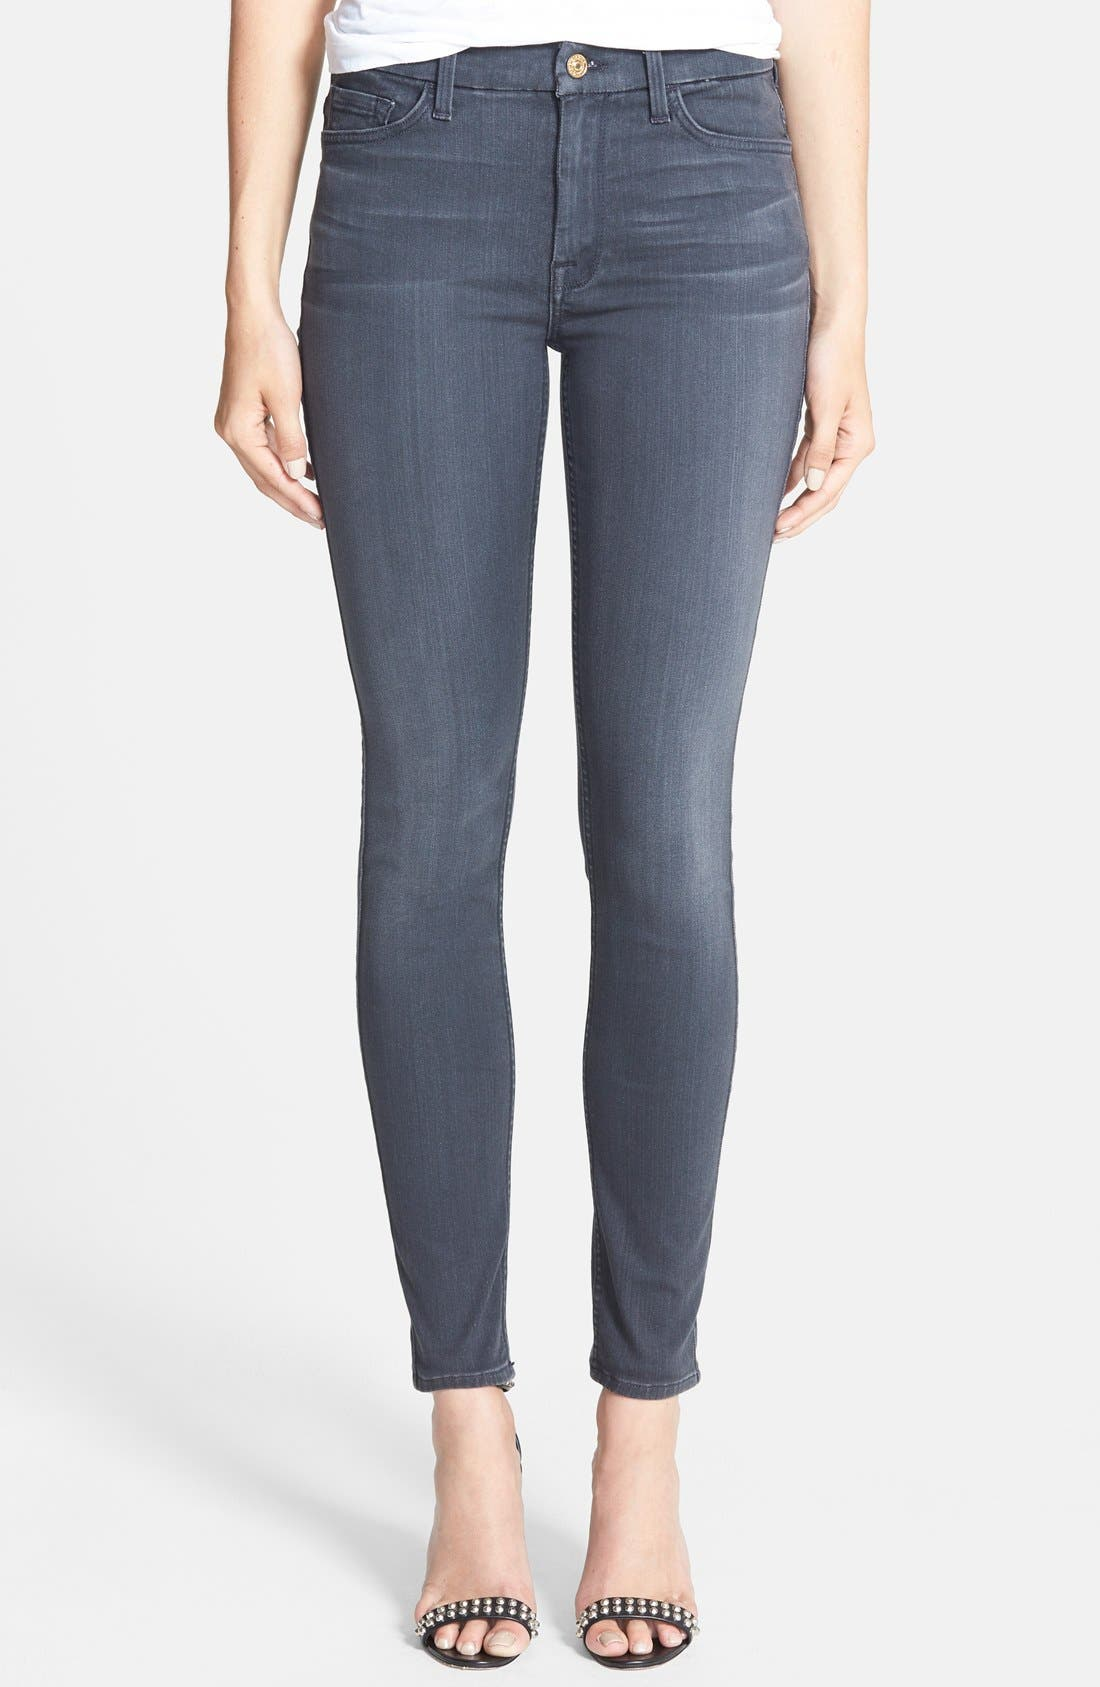 Main Image - 7 For All Mankind® High Waist Ankle Skinny Jeans (Bastille Grey)